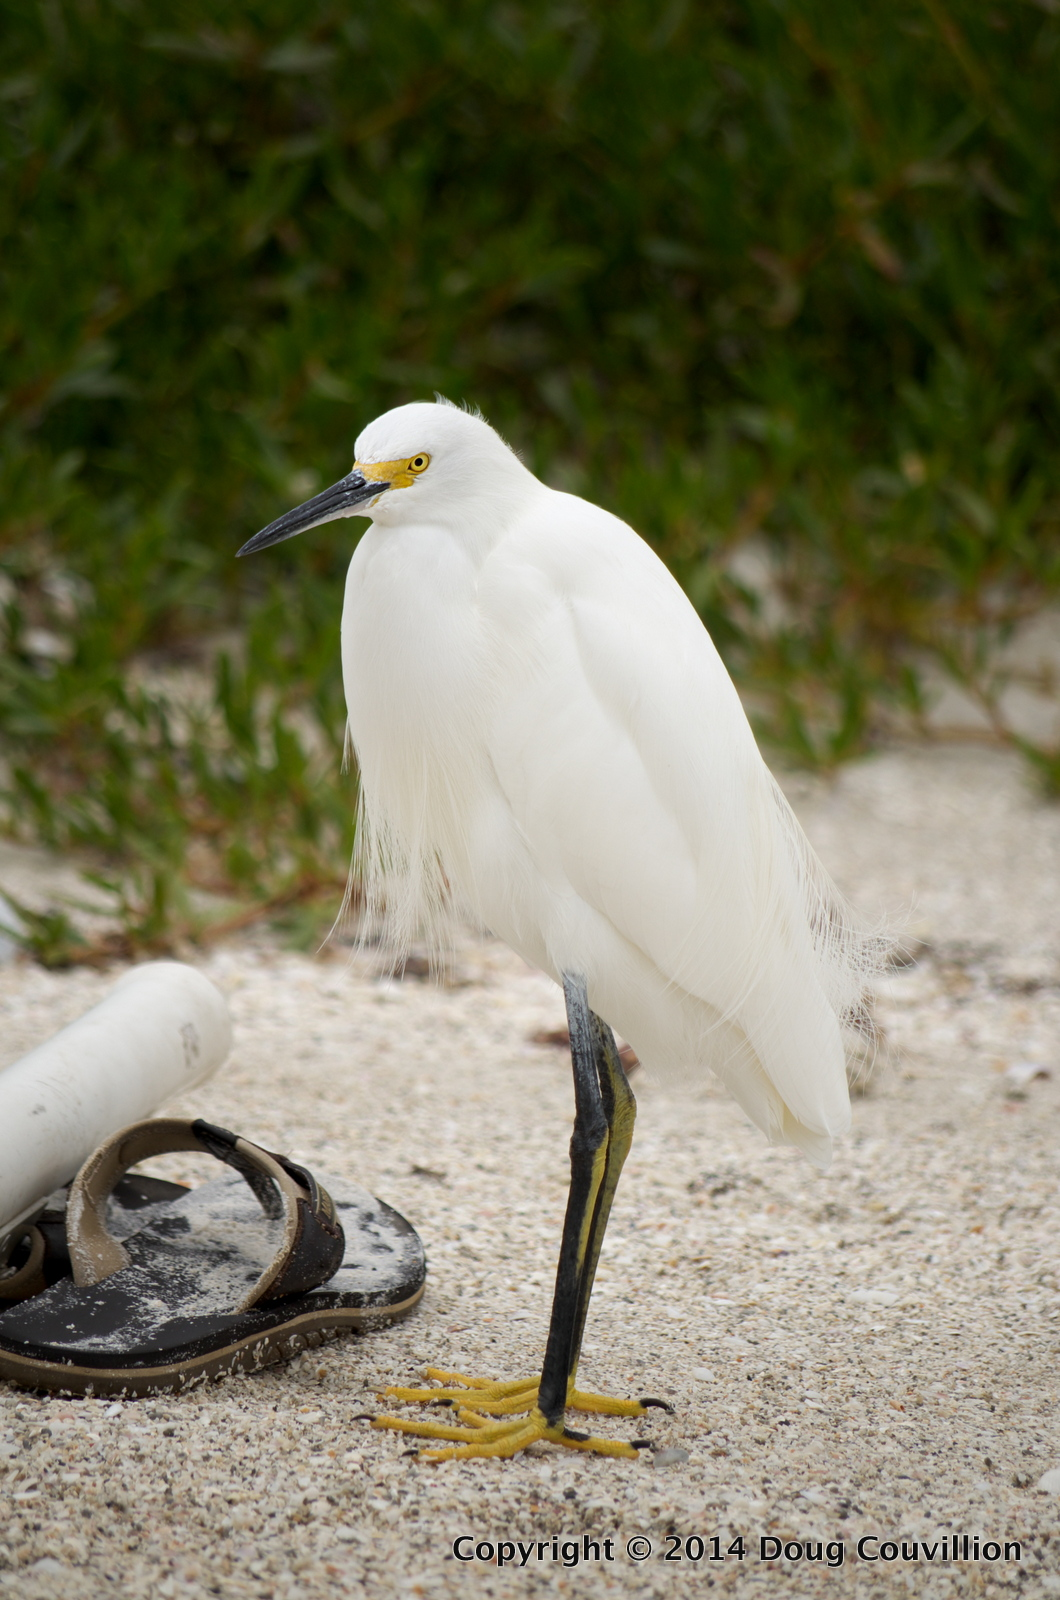 photograph of a Snowy Egret standing on a sandy beach next to a sandal